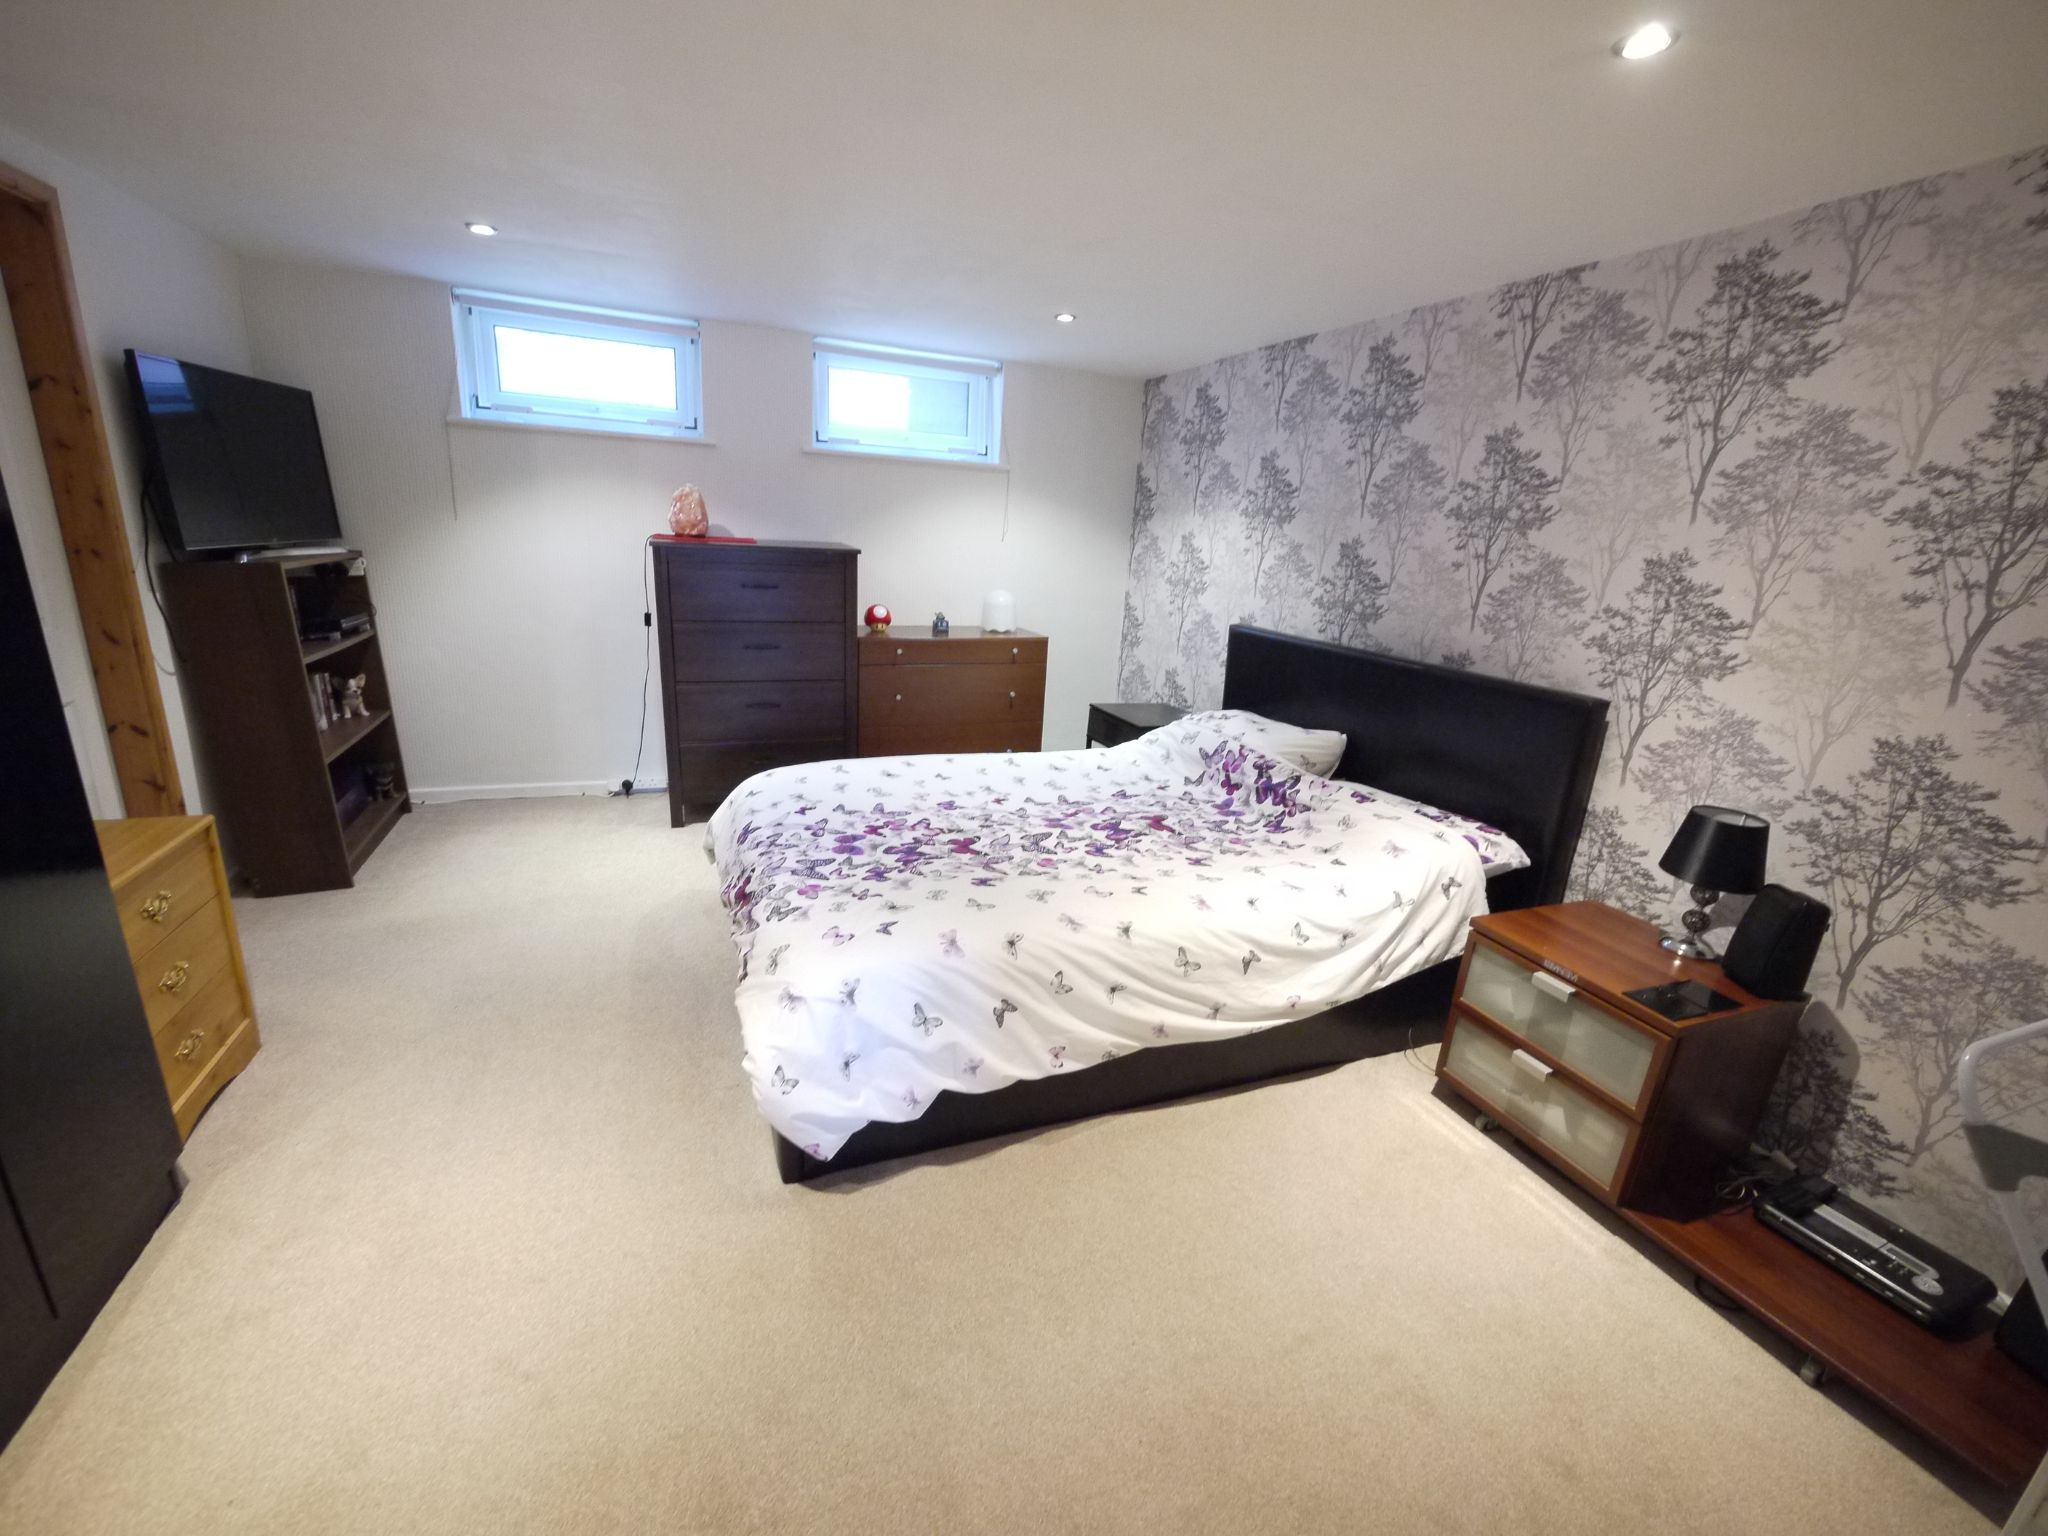 4 bedroom semi-detached house SSTC in Brighouse - Lower Gd Flr bed.